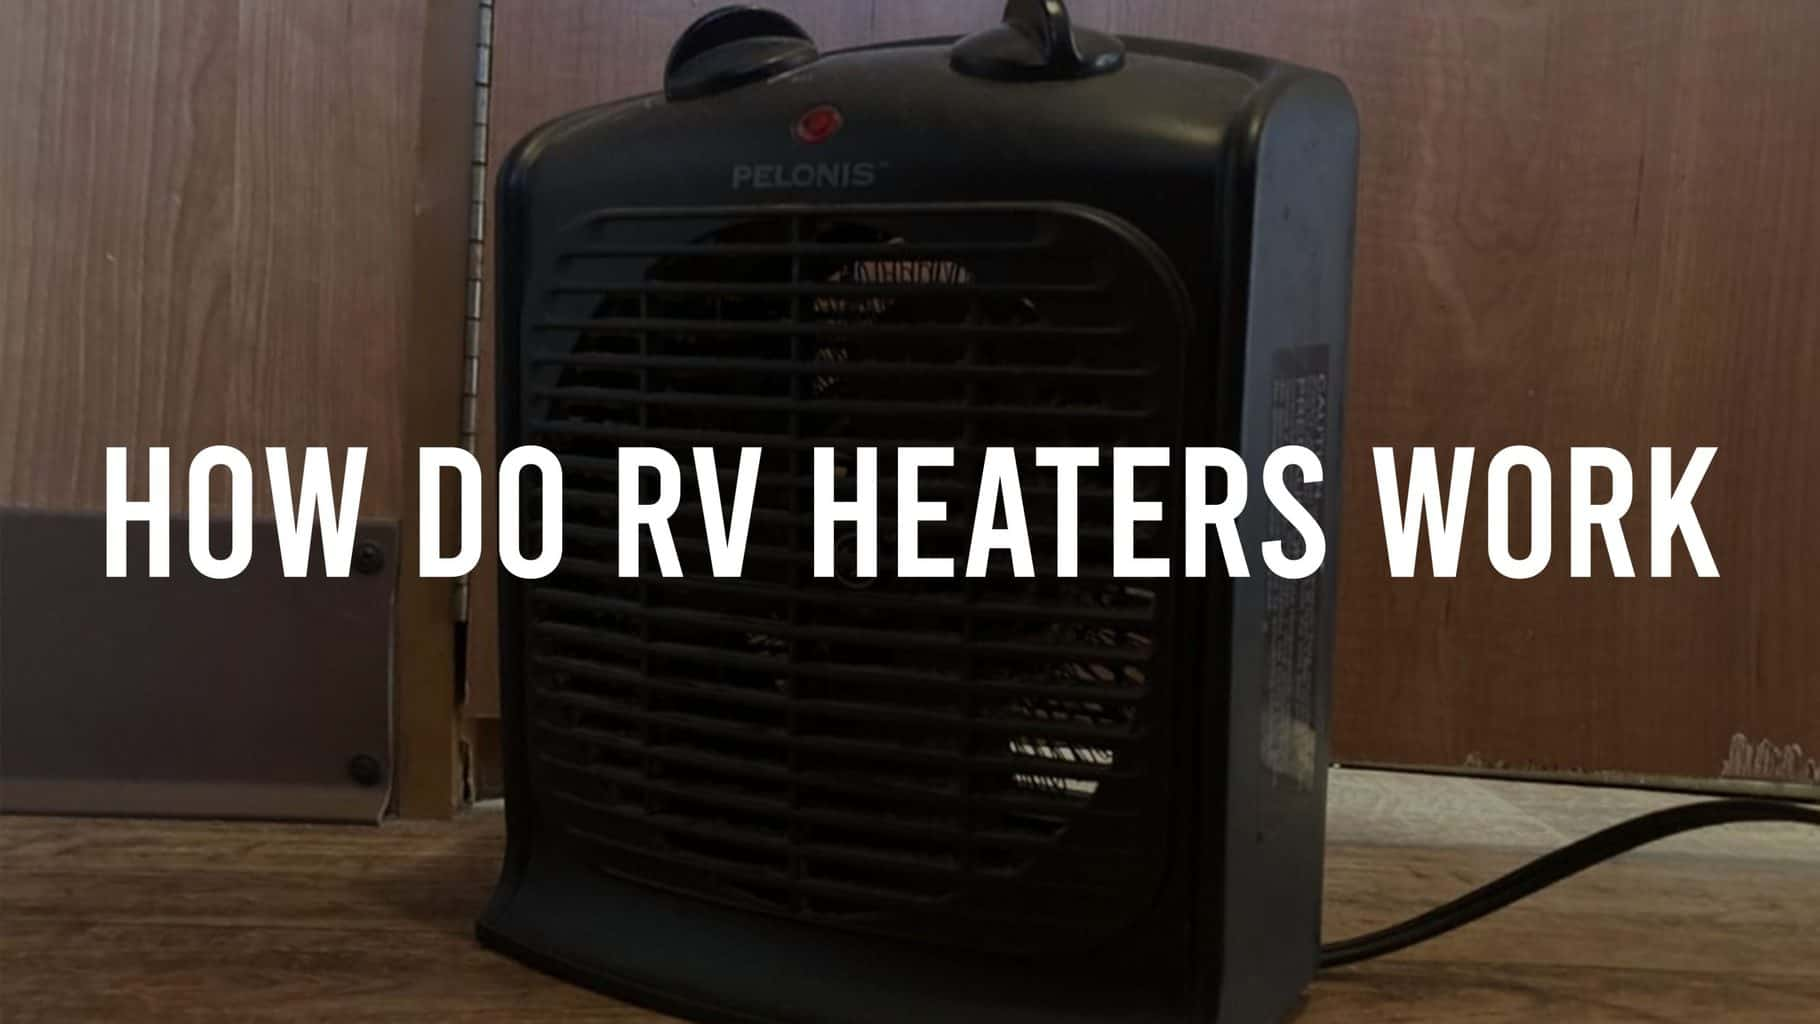 Featured image on How do RV heaters work